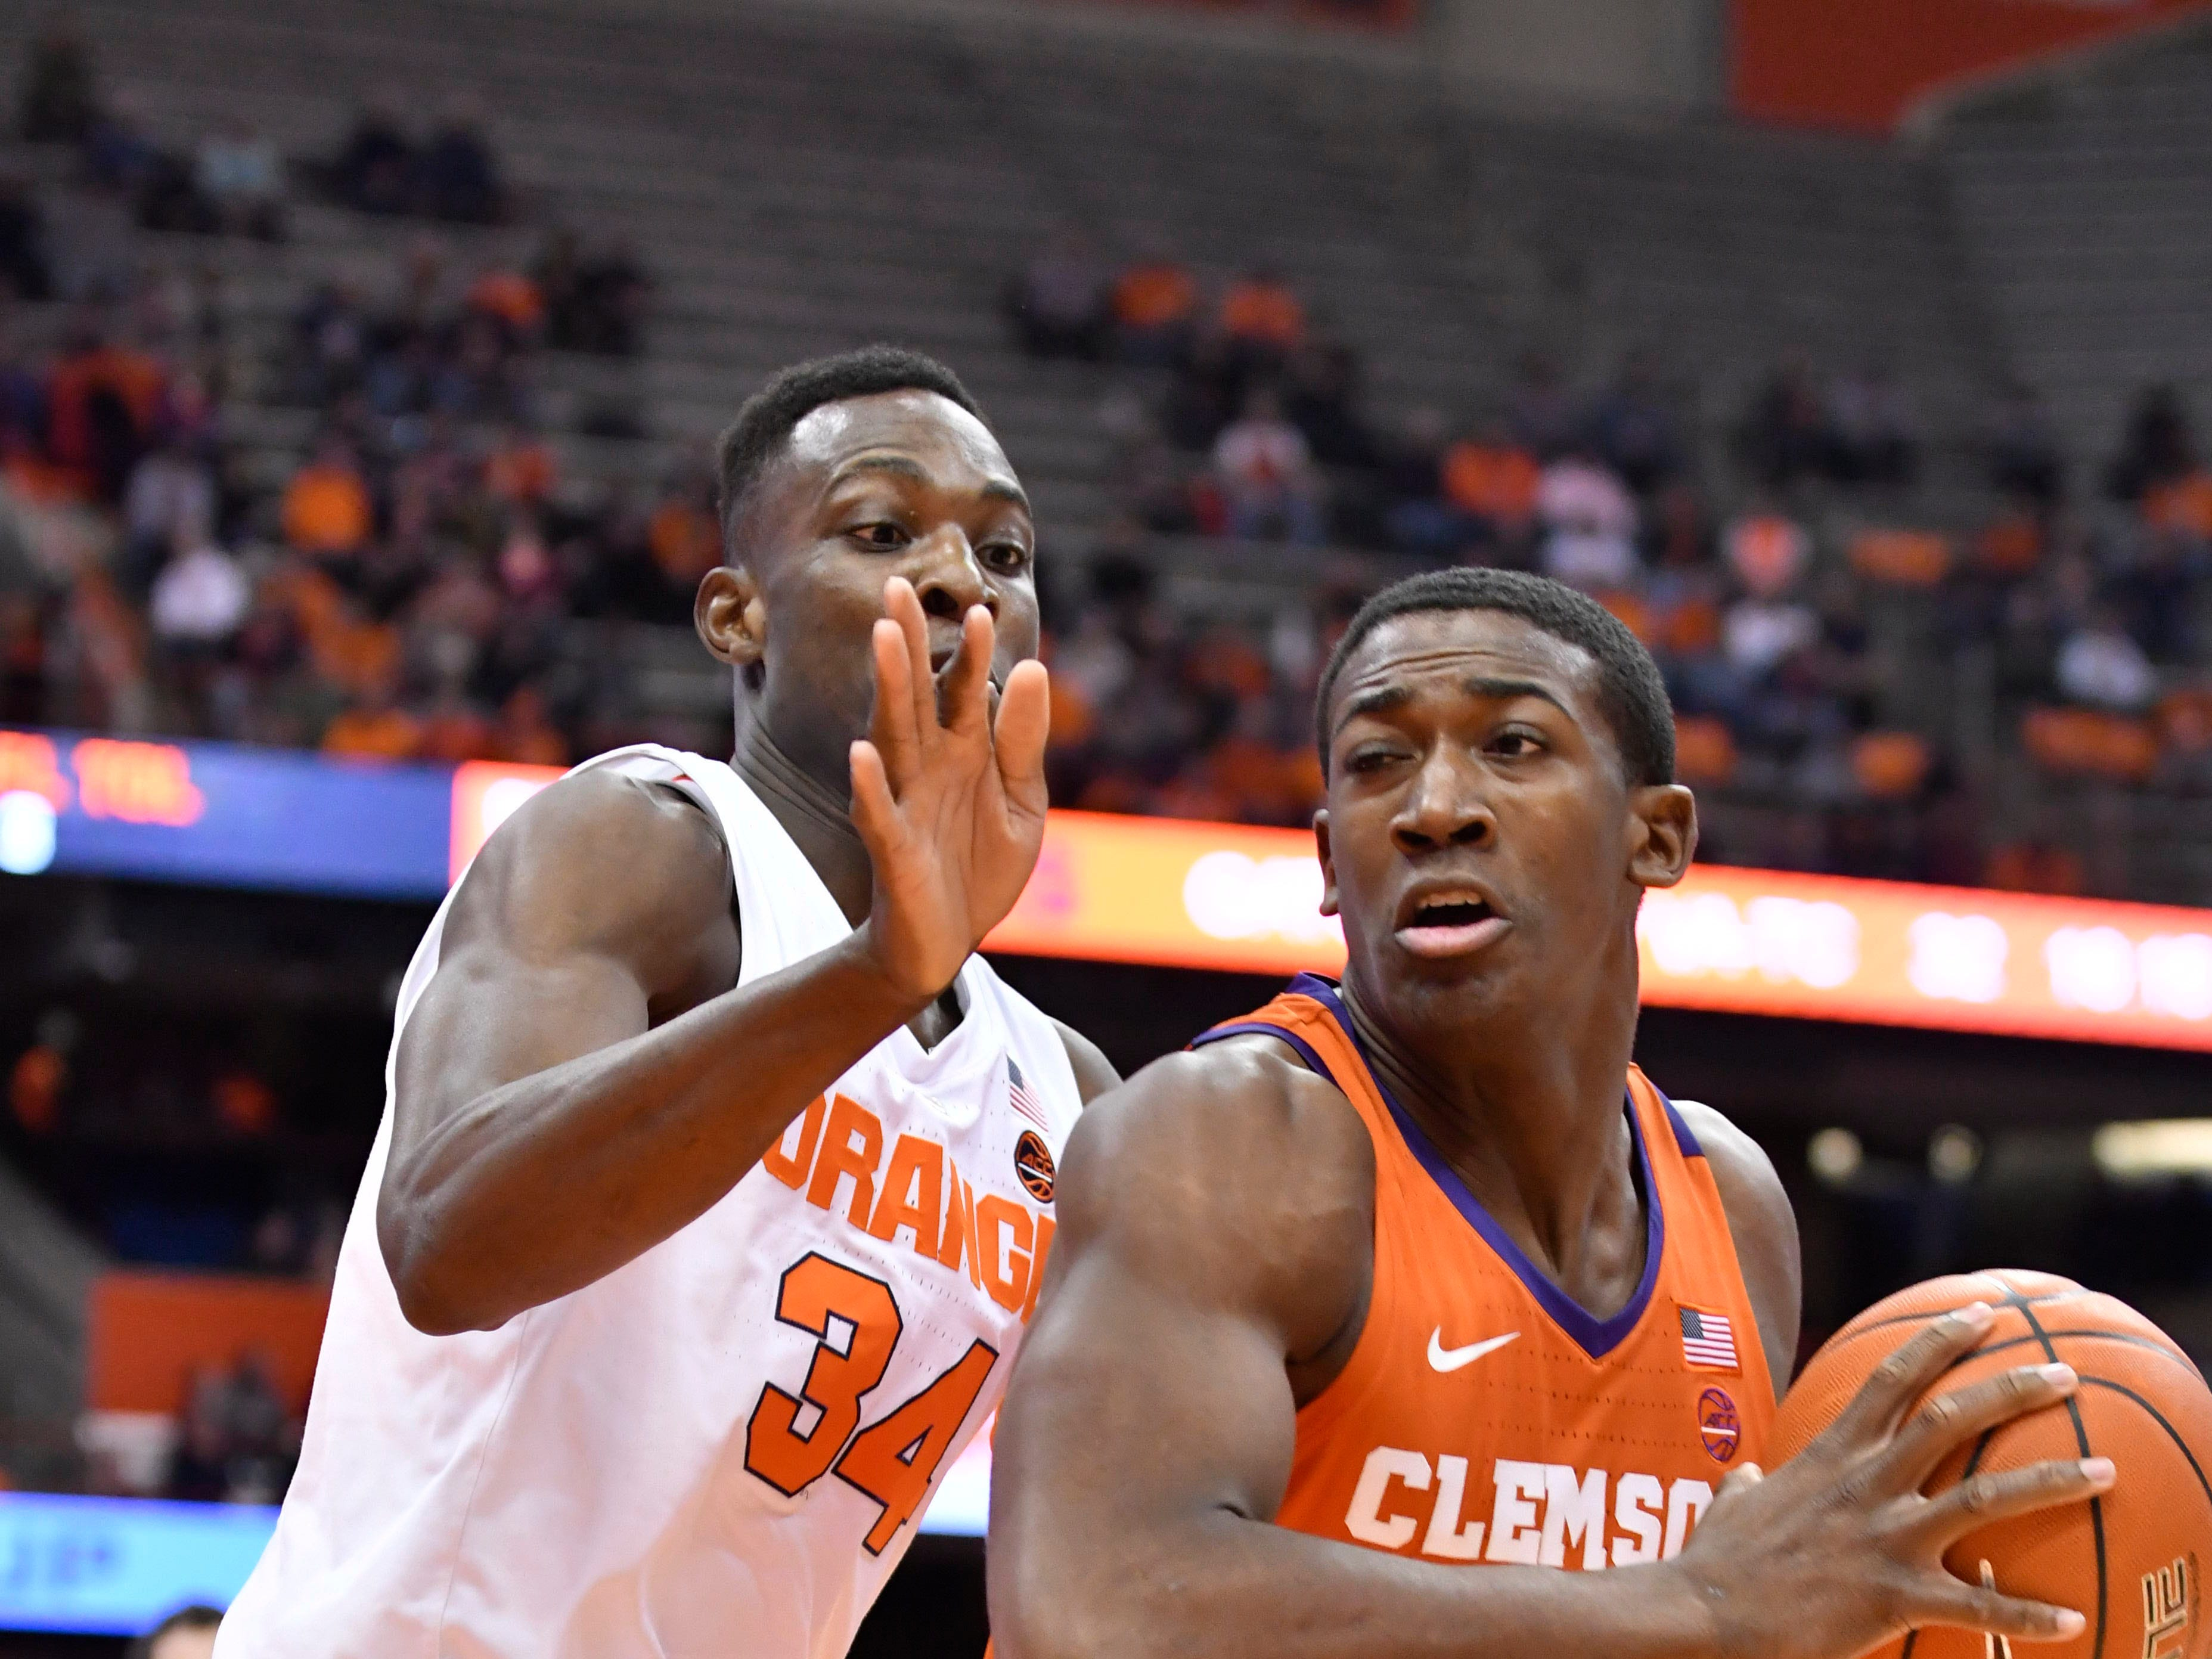 Jan 9, 2019; Syracuse, NY, USA; Clemson Tigers center Trey Jemison (55) turns to the basket against Syracuse Orange forward Bourama Sidibe (34) during the first half at the Carrier Dome.